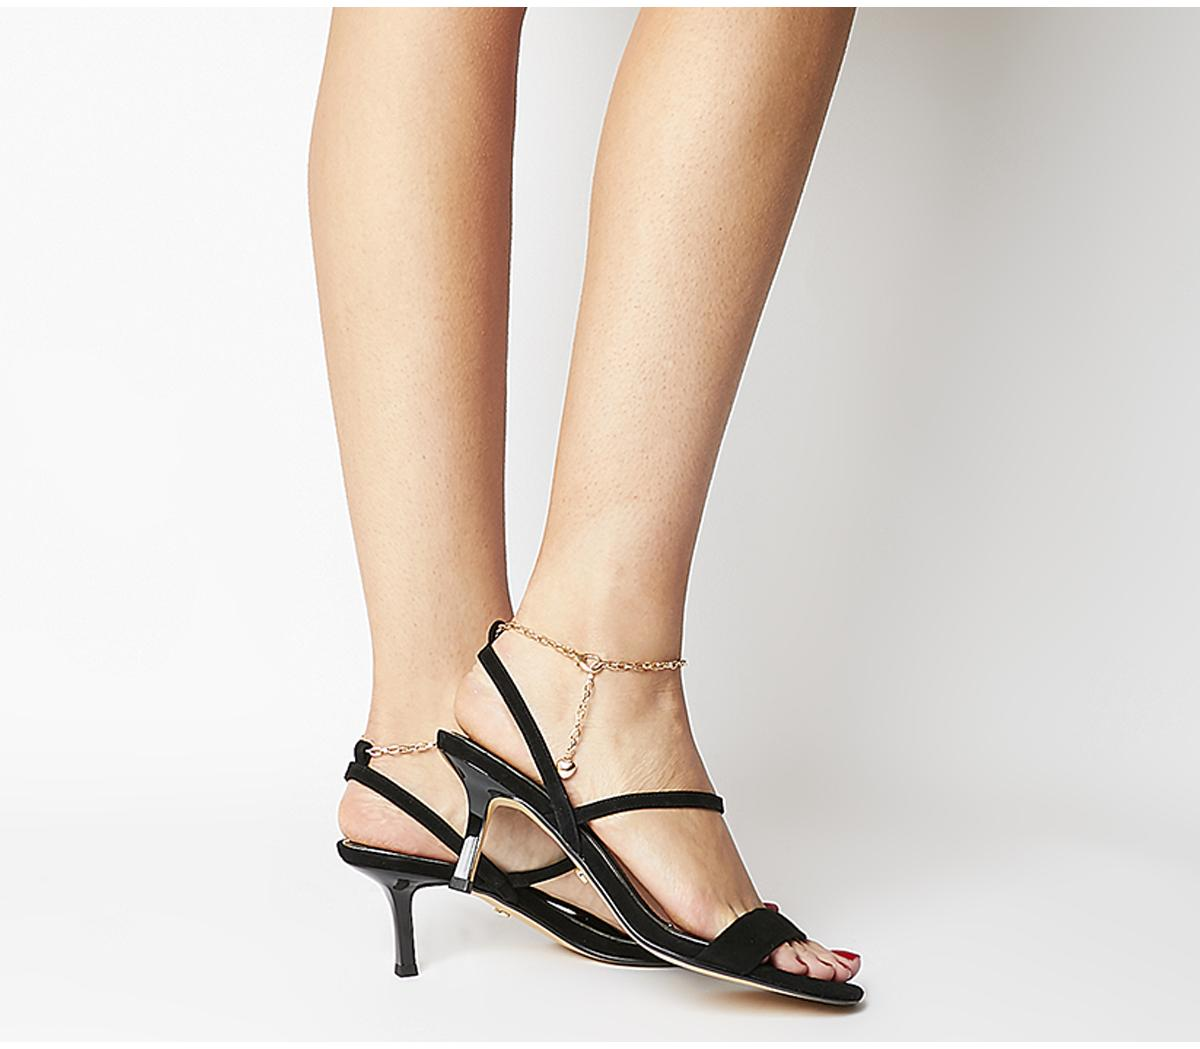 Merry Go Round Heels With Ankle Chain